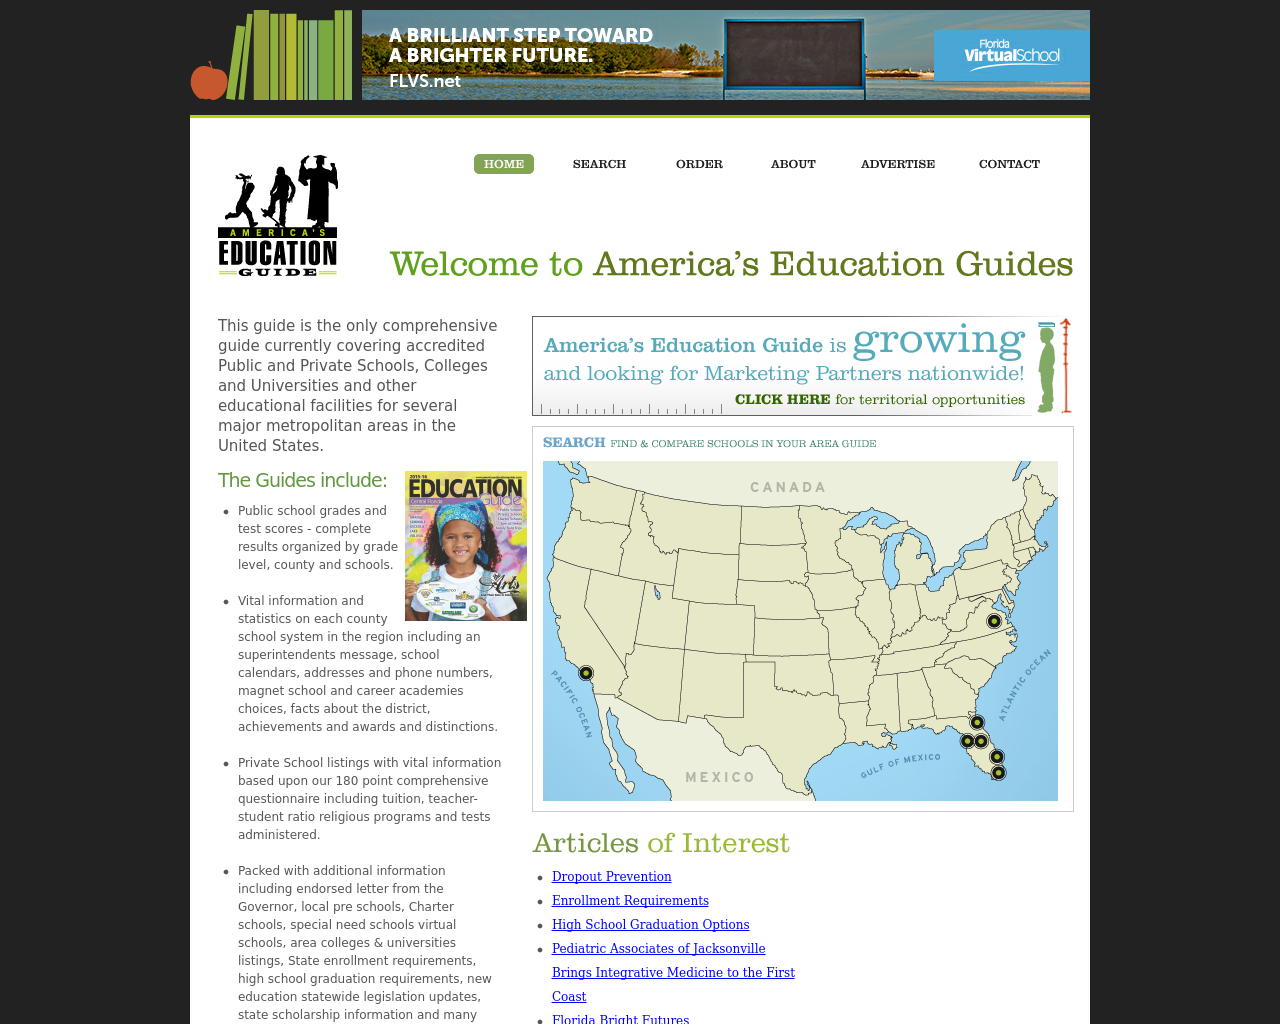 Americaseducationguide-Advertising-Reviews-Pricing